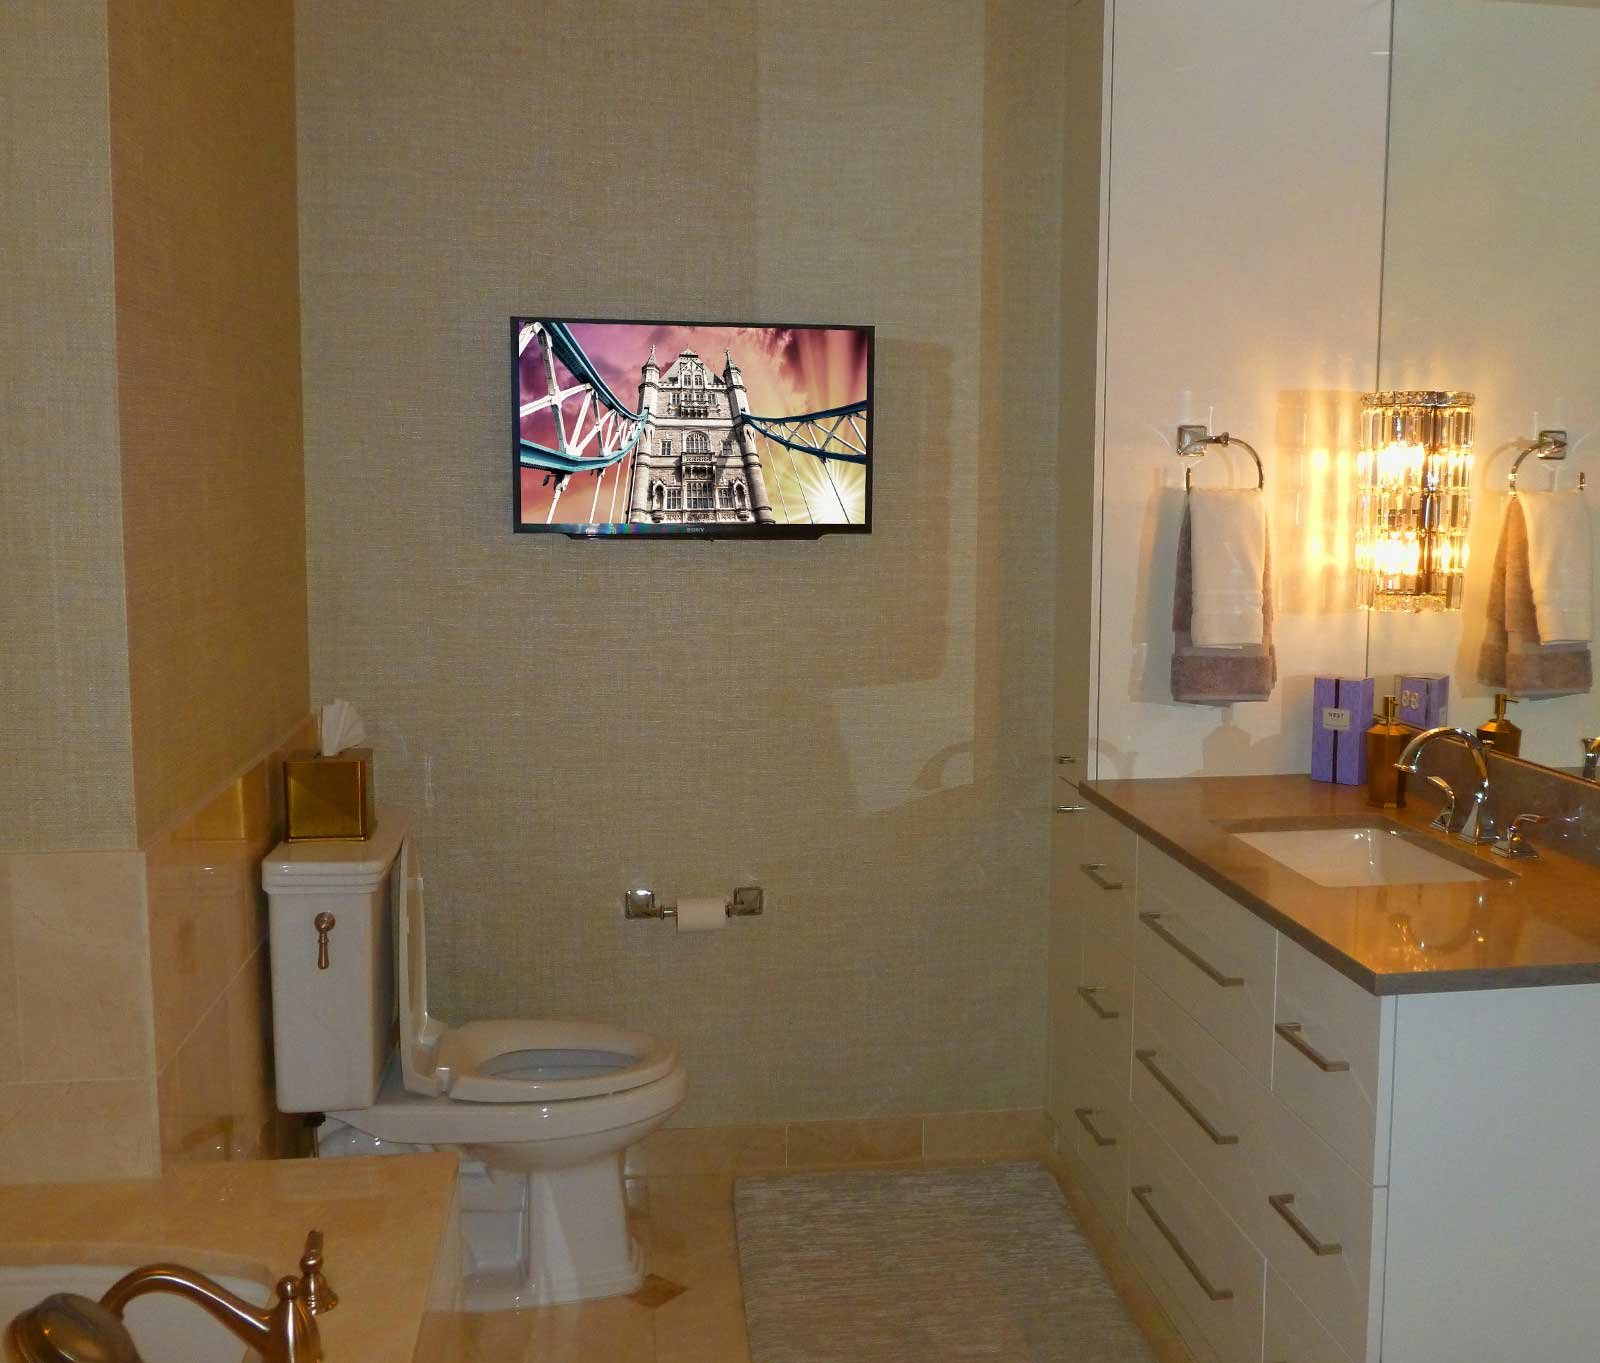 TV in Rittenhouse Square Condo Bathroom